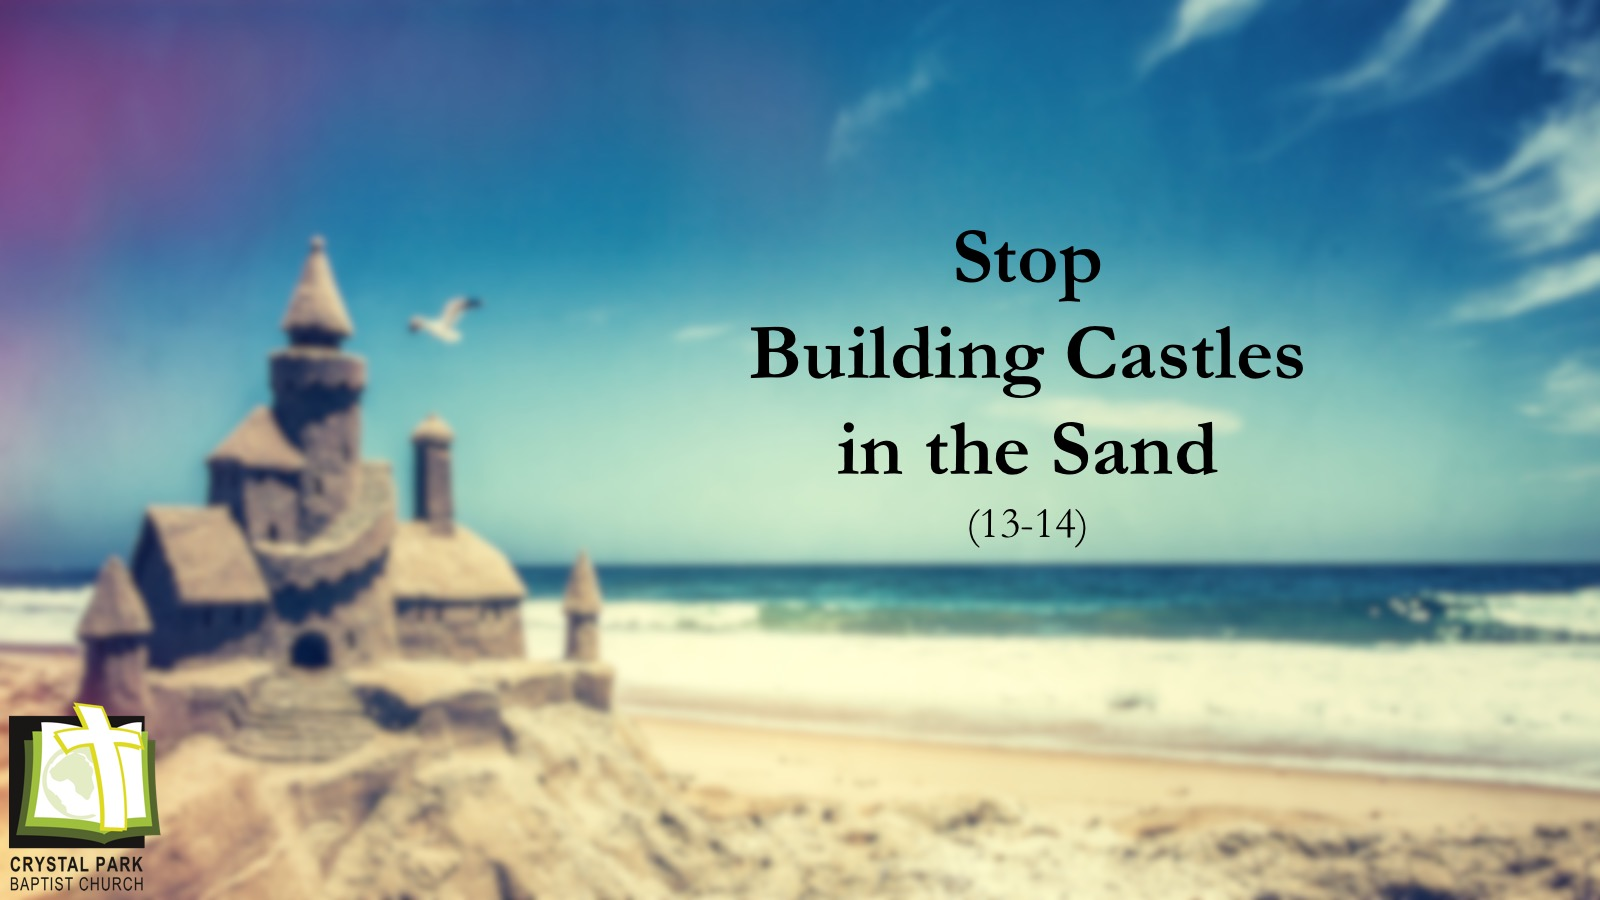 Stop Building Castles in the Sand